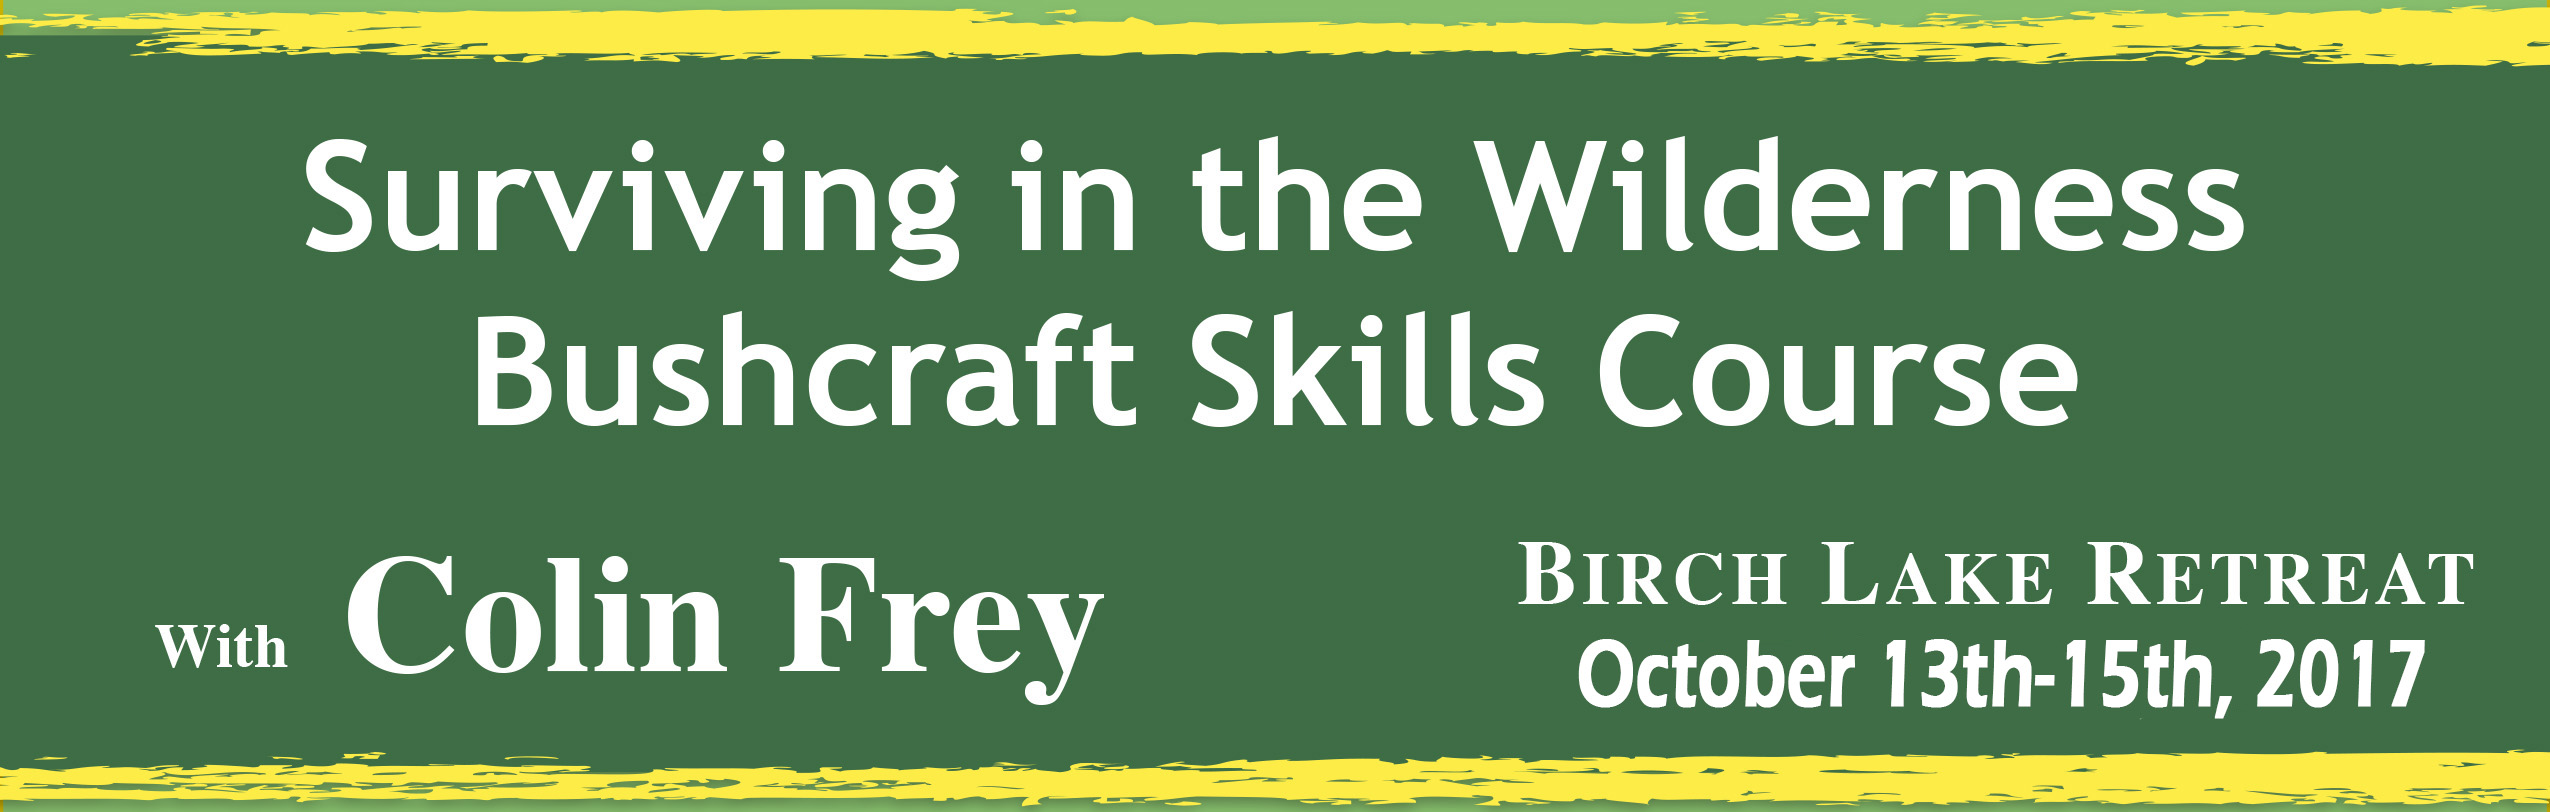 Bushcraft Skills Course - October 13th - 15th